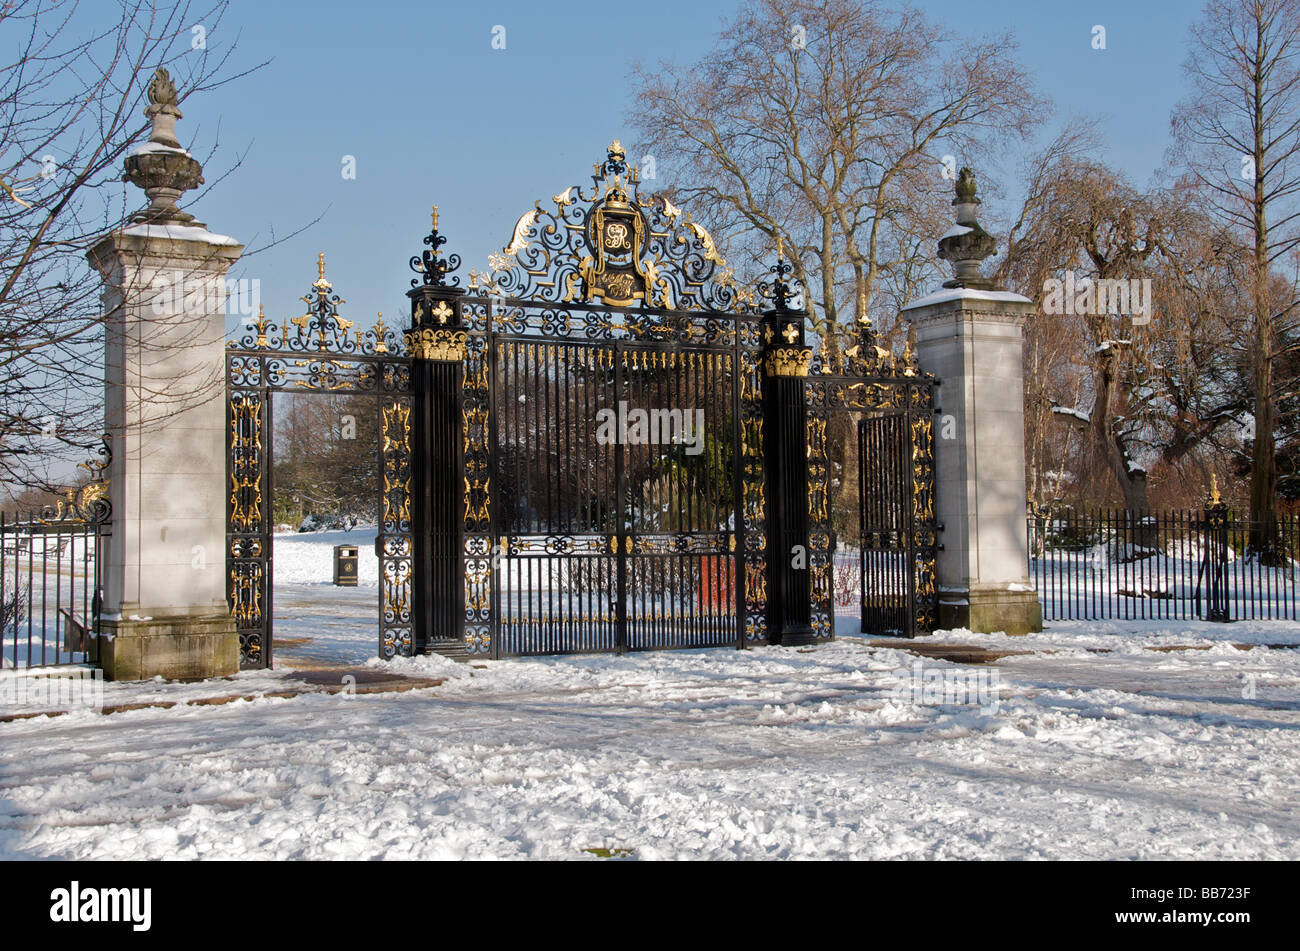 Jubilee Gate in winter entrance to Queen Mary's Garden Inner Circle Regents Park London England UK - Stock Image